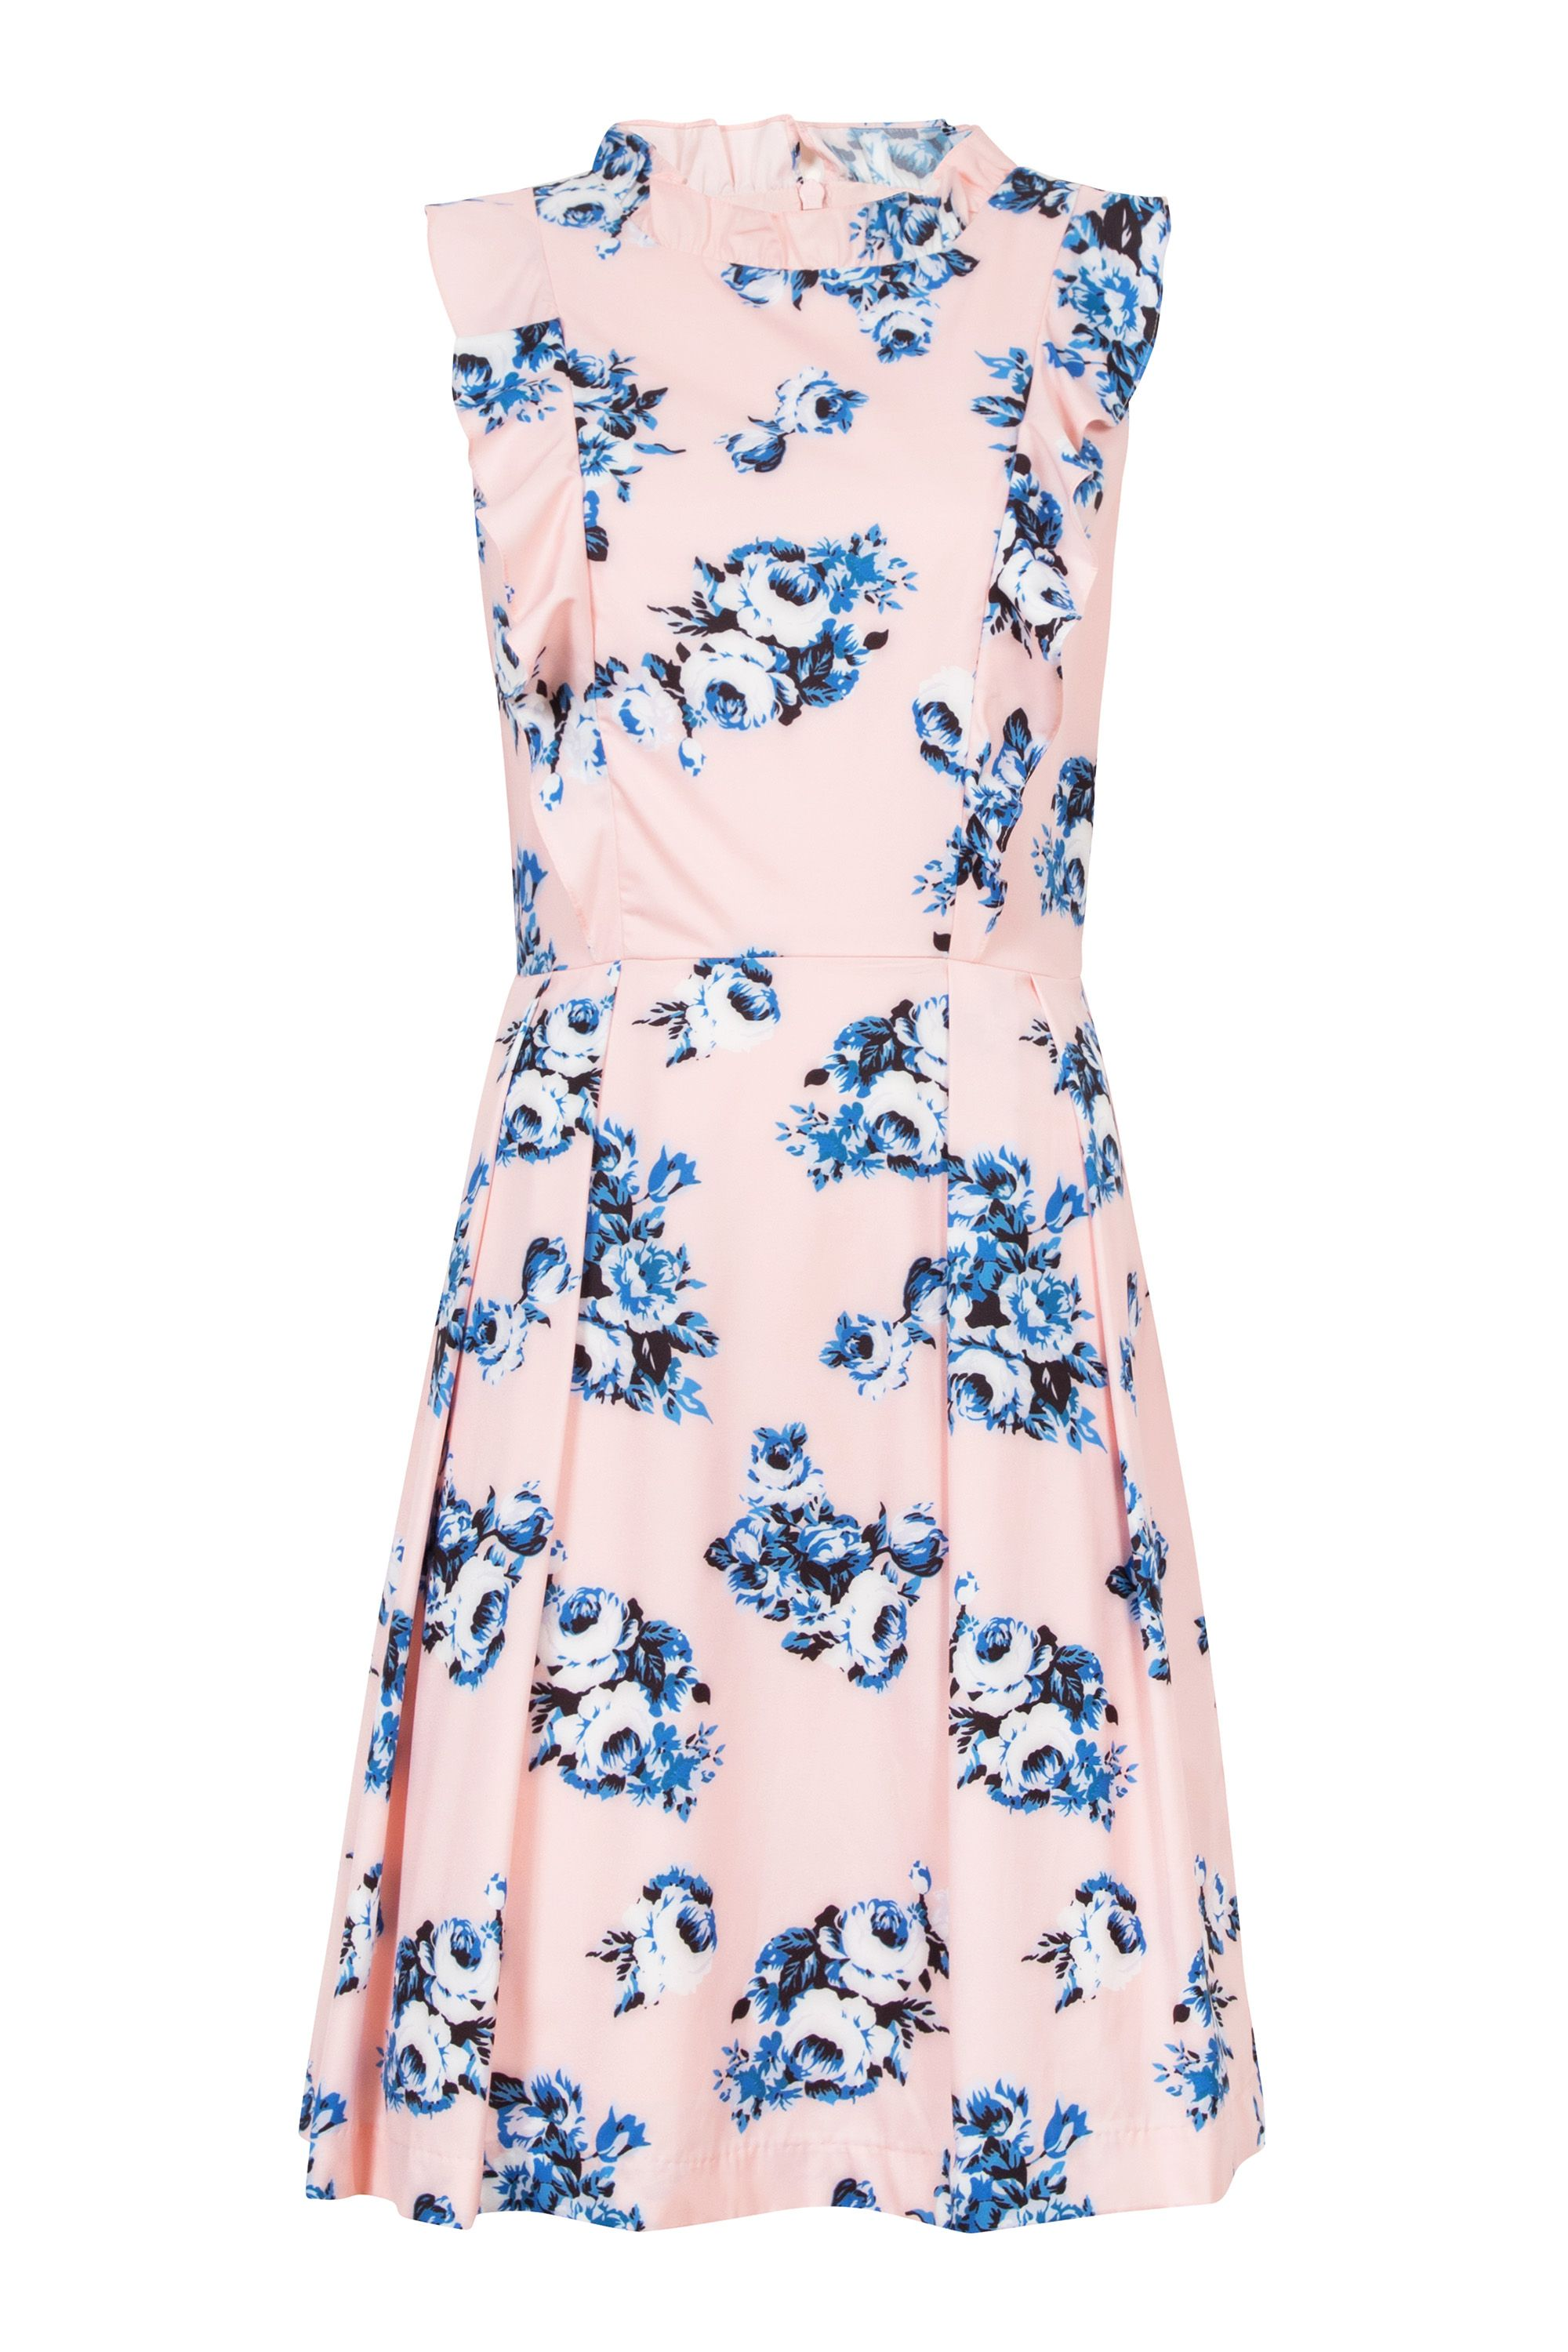 Wolf & Whistle Wolf & Whistle Floral Frill Dress, Multi-Coloured